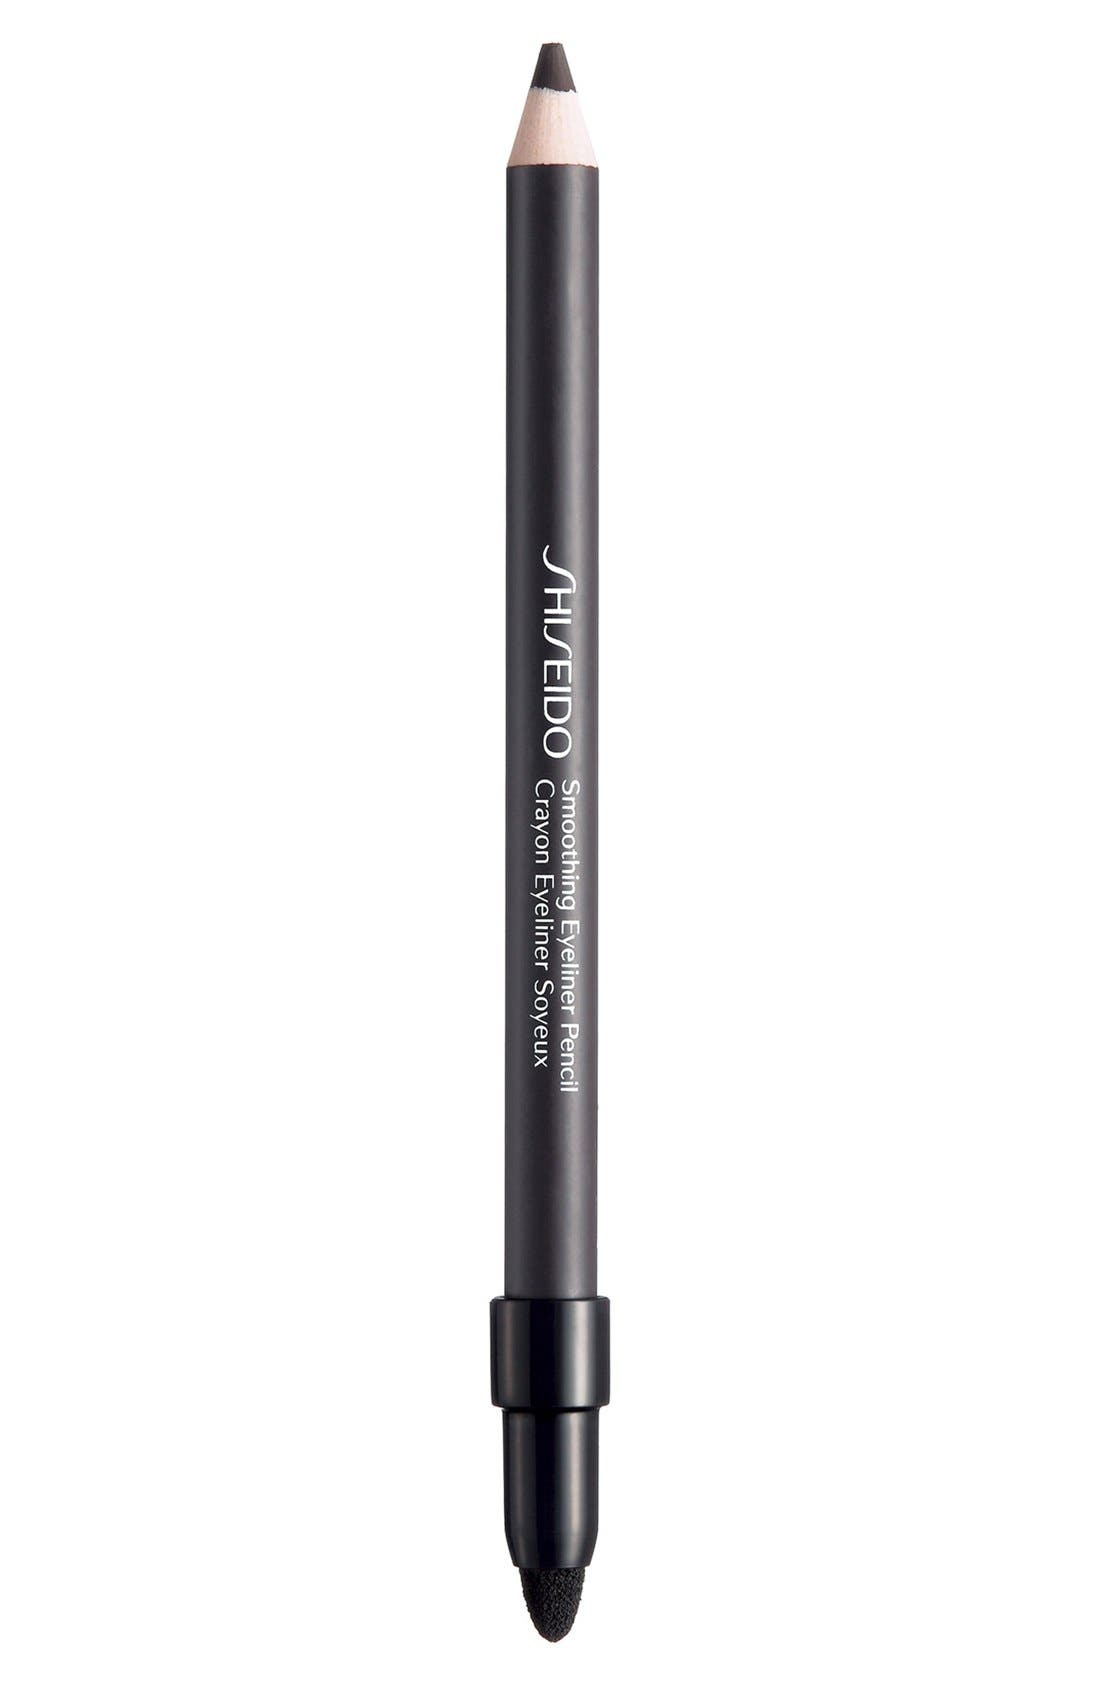 'The Makeup' Smoothing Eyeliner Pencil,                             Alternate thumbnail 2, color,                             001